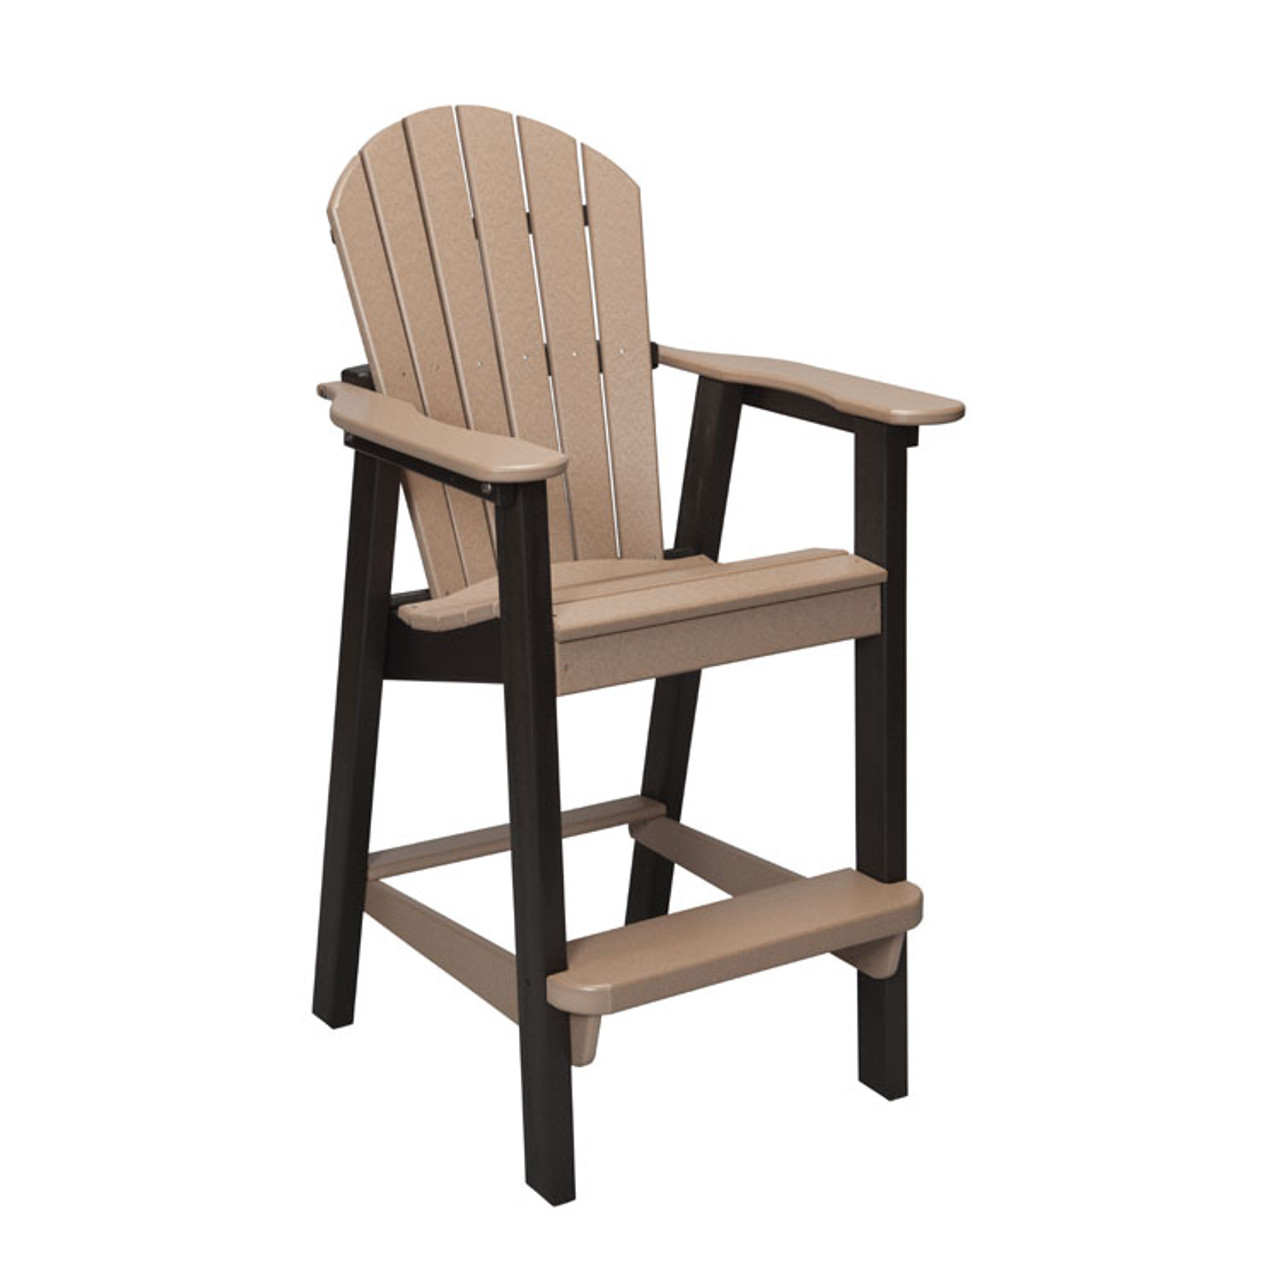 Fine Oceanside Outdoor Poly Lumber Counter Height Stool With Arms Beatyapartments Chair Design Images Beatyapartmentscom